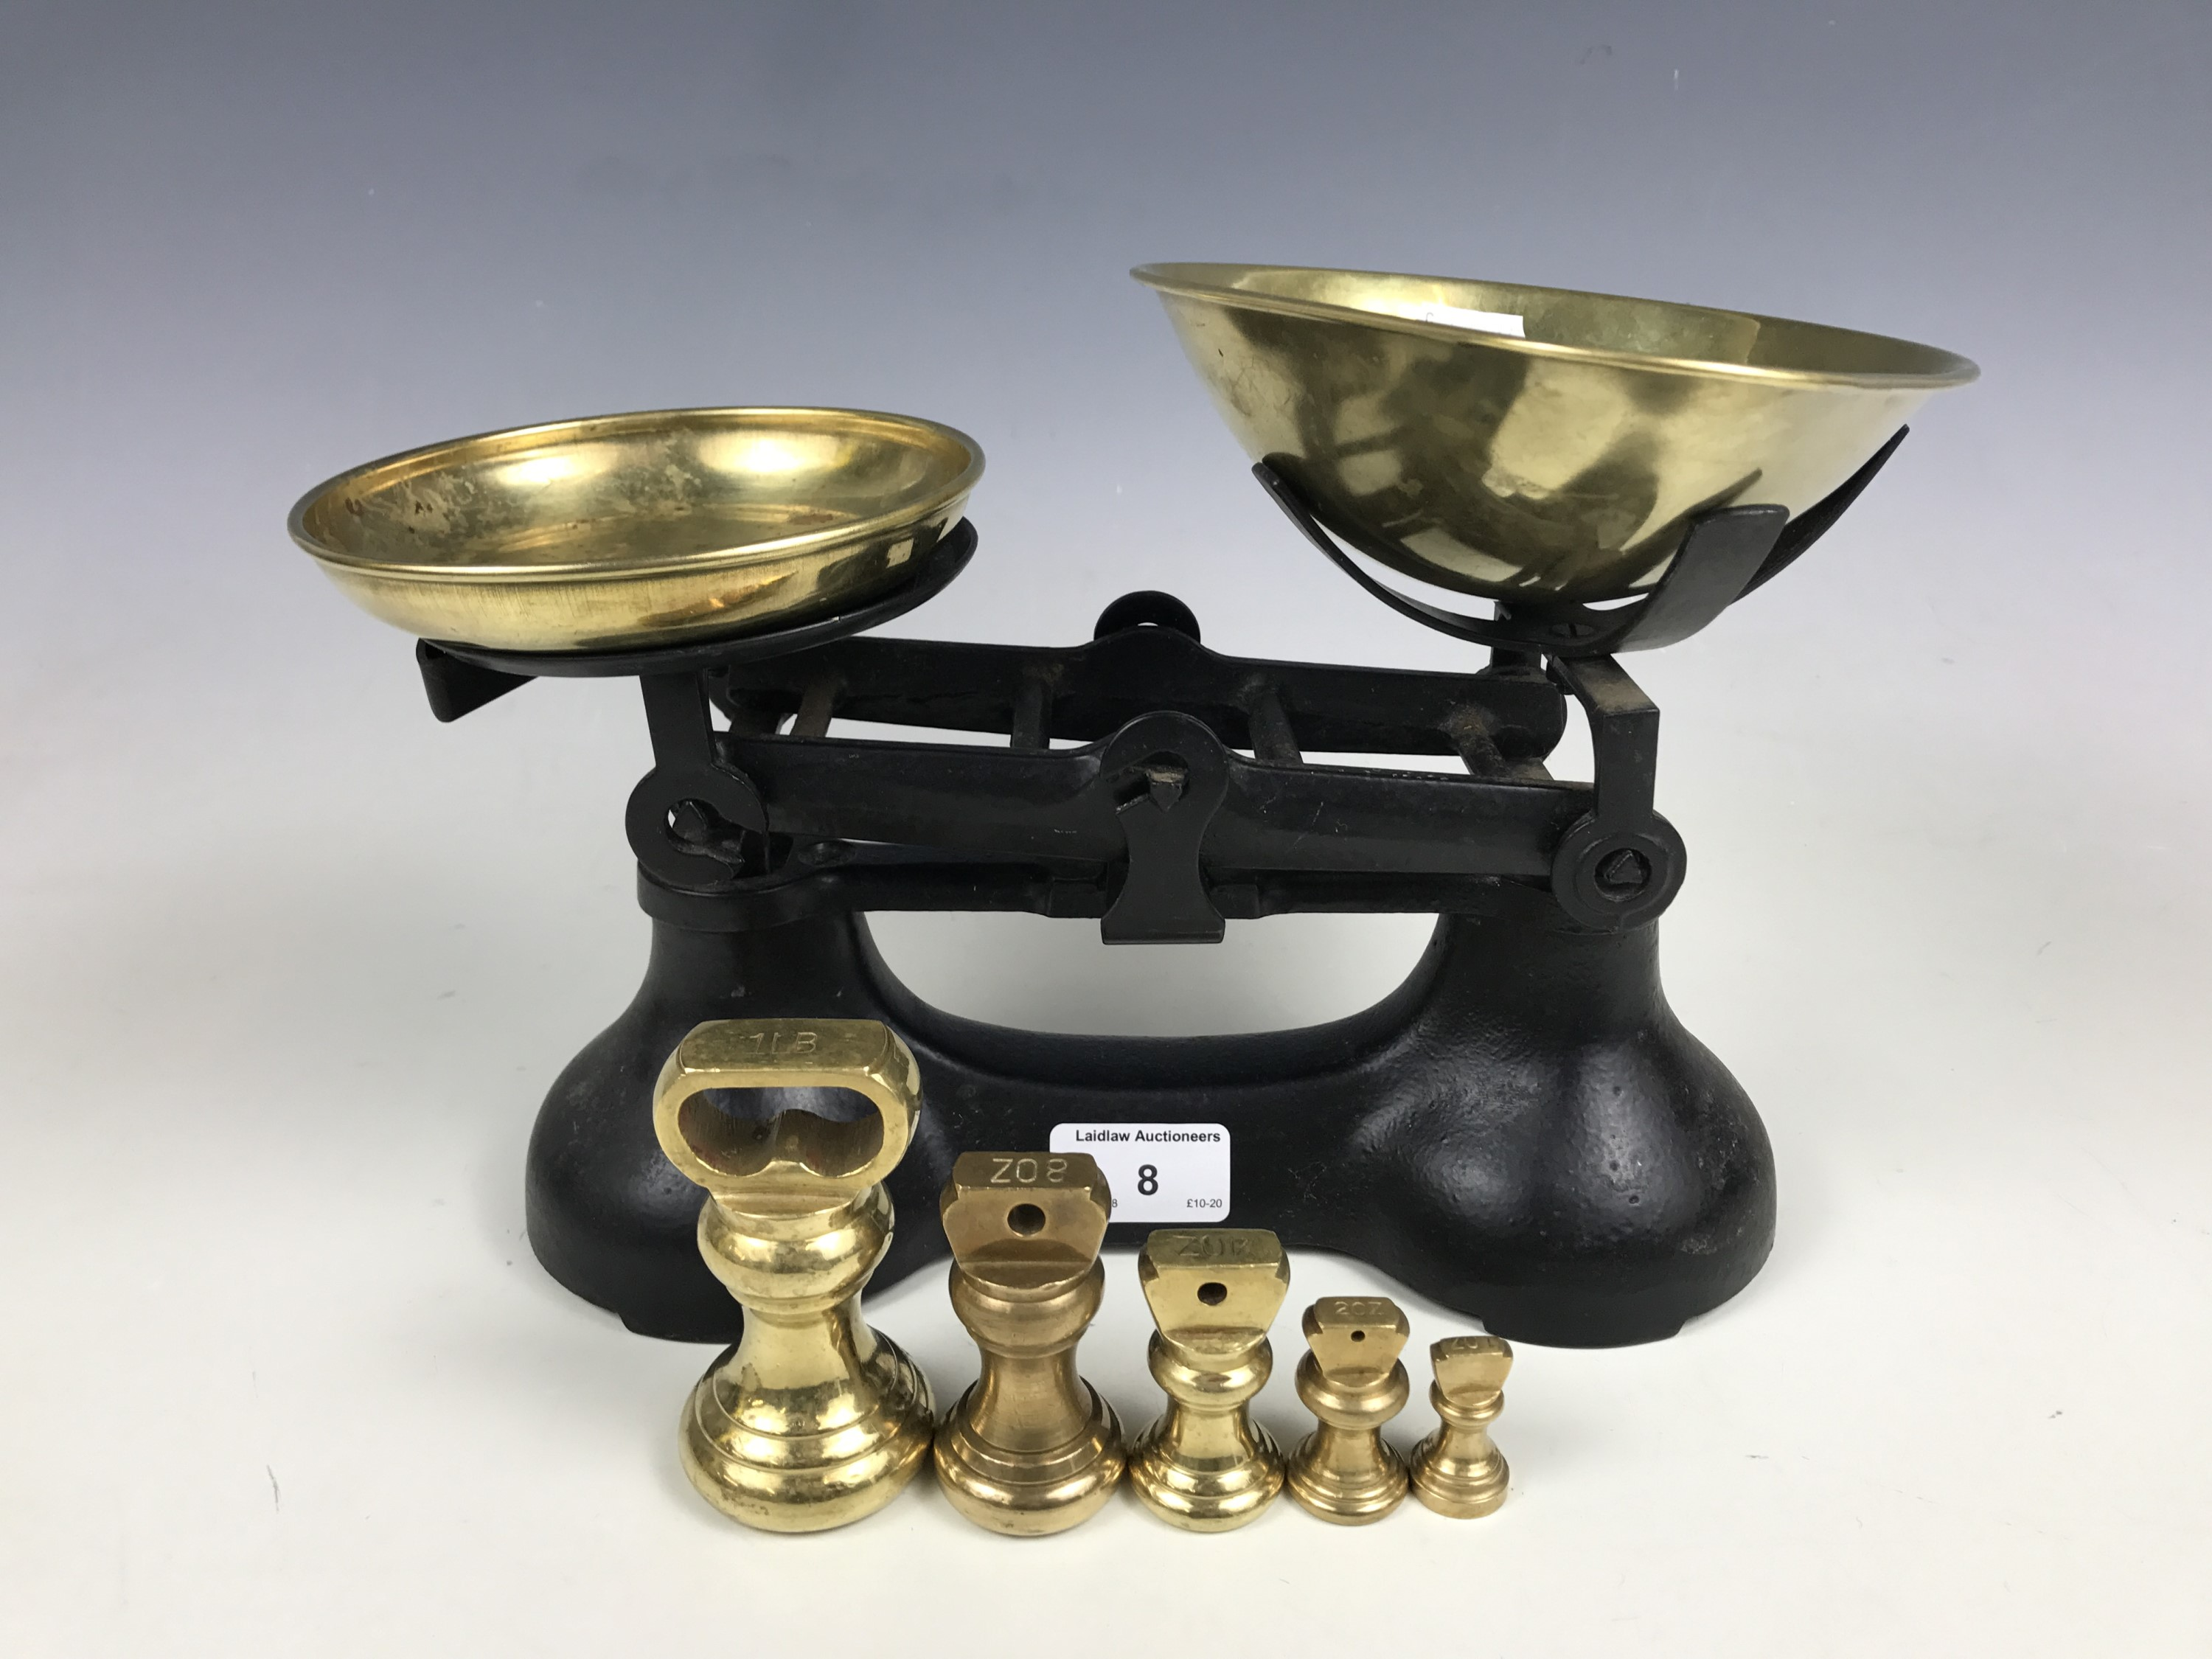 Lot 8 - A set of vintage kitchen scales with weights